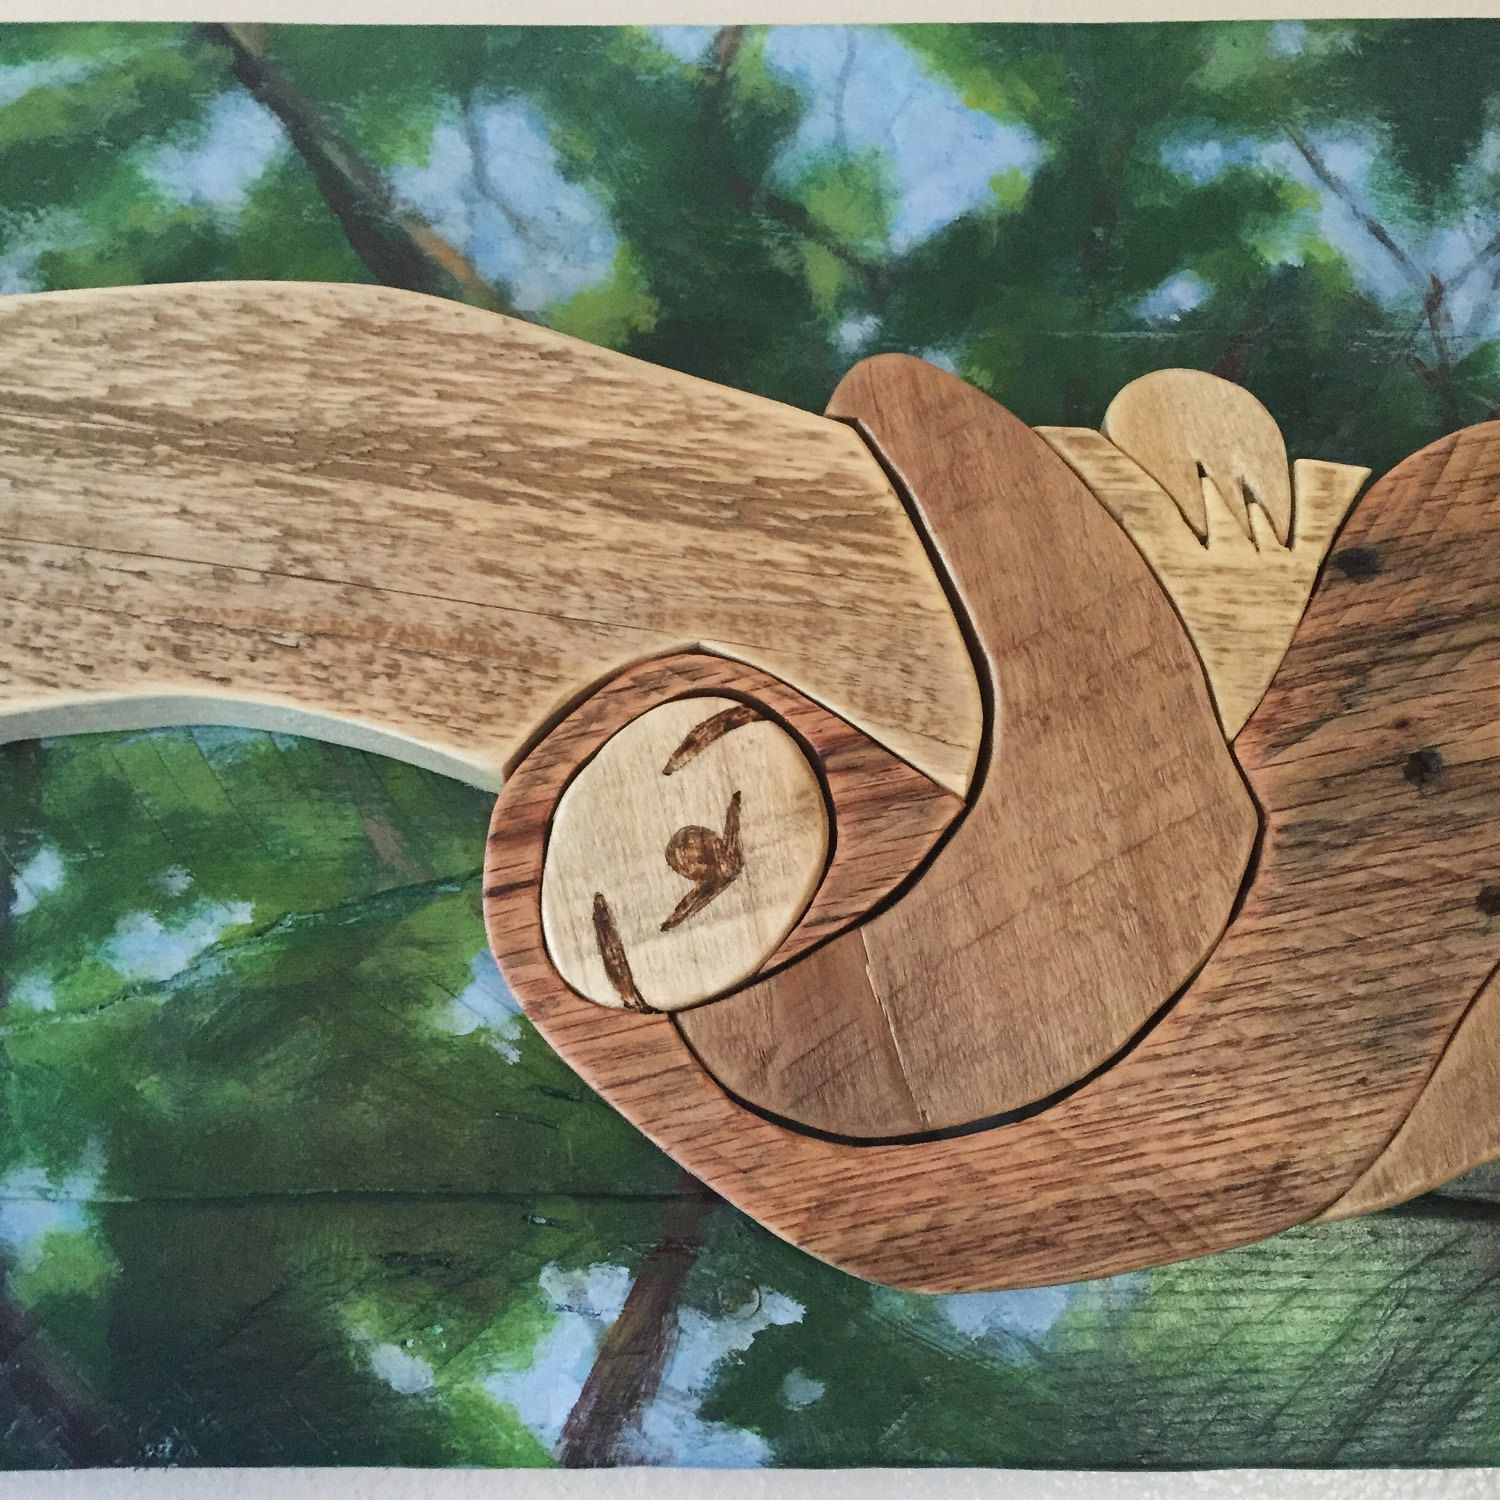 Sloth wood art- reclaimed wood, wall home decor, rustic animal art #herbivore #PaintOnWood #WoodArt #HomeDecor #sloth #rustic #animal #mammal #CuteAnimal #ReclaimedWood